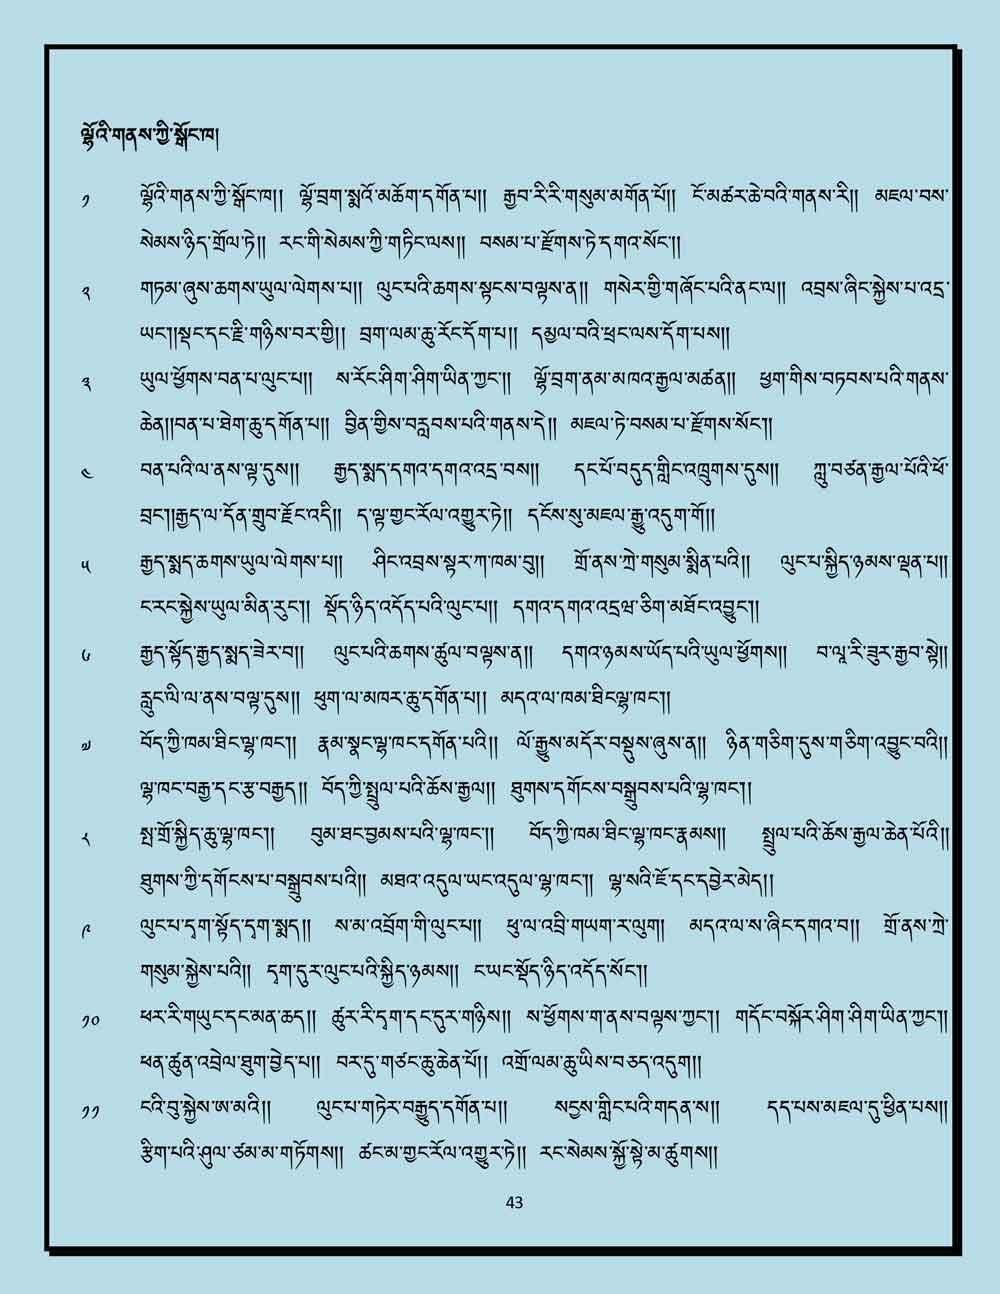 Ap-Tseten-Lyrics-43.jpg